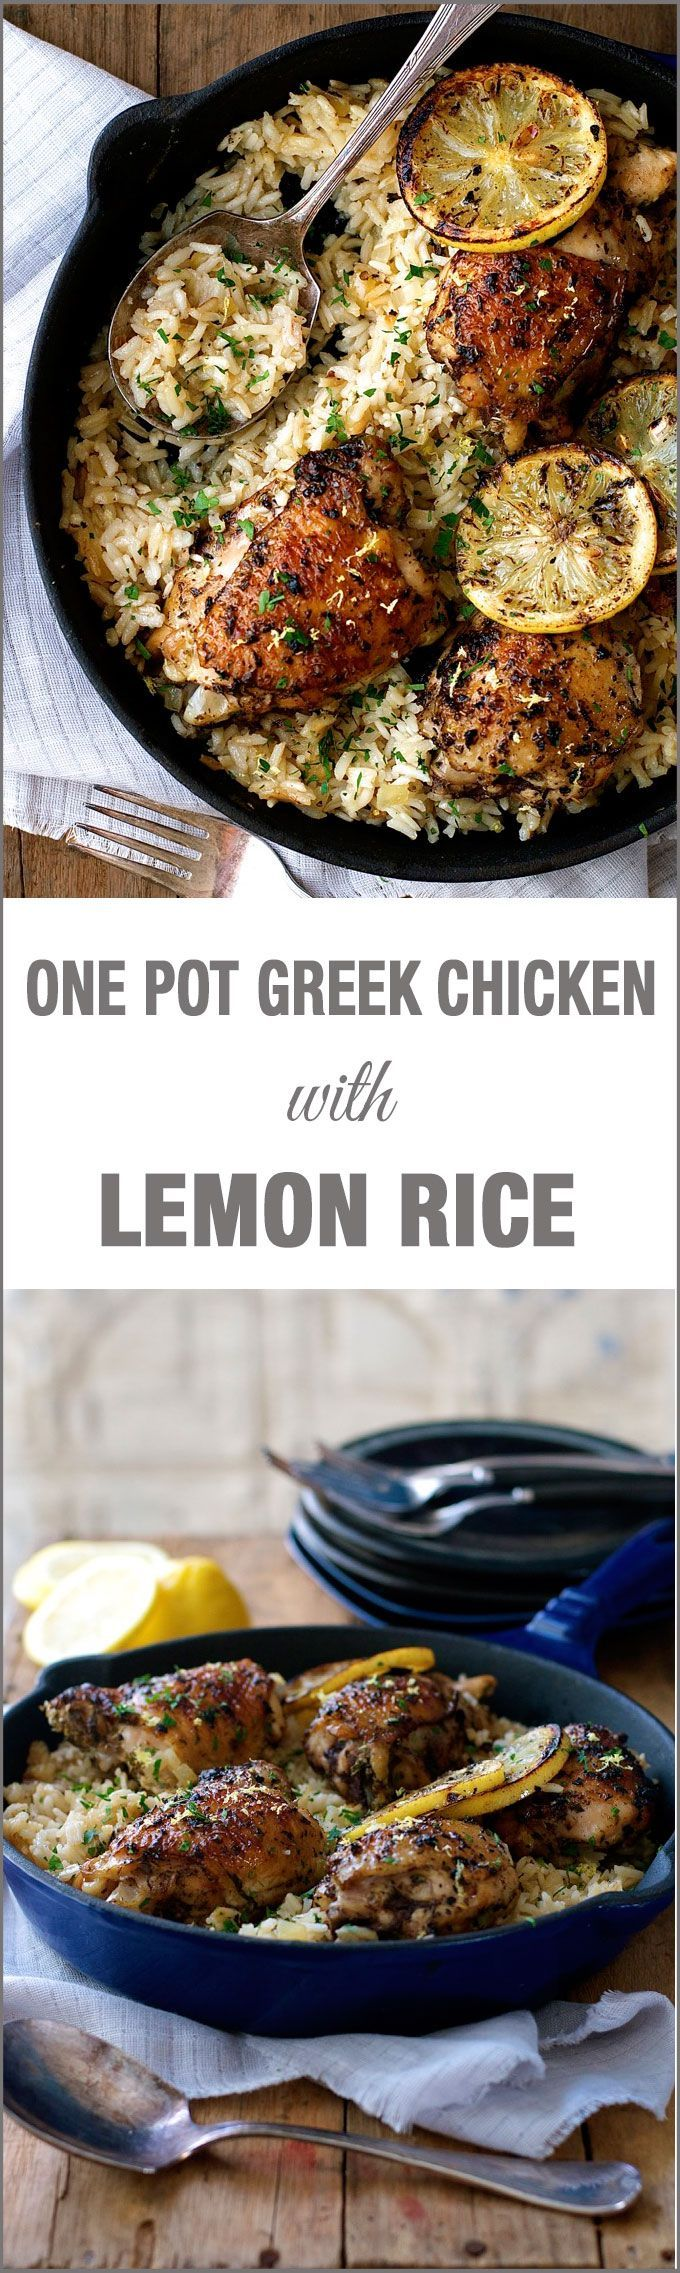 One Pot Greek Chicken